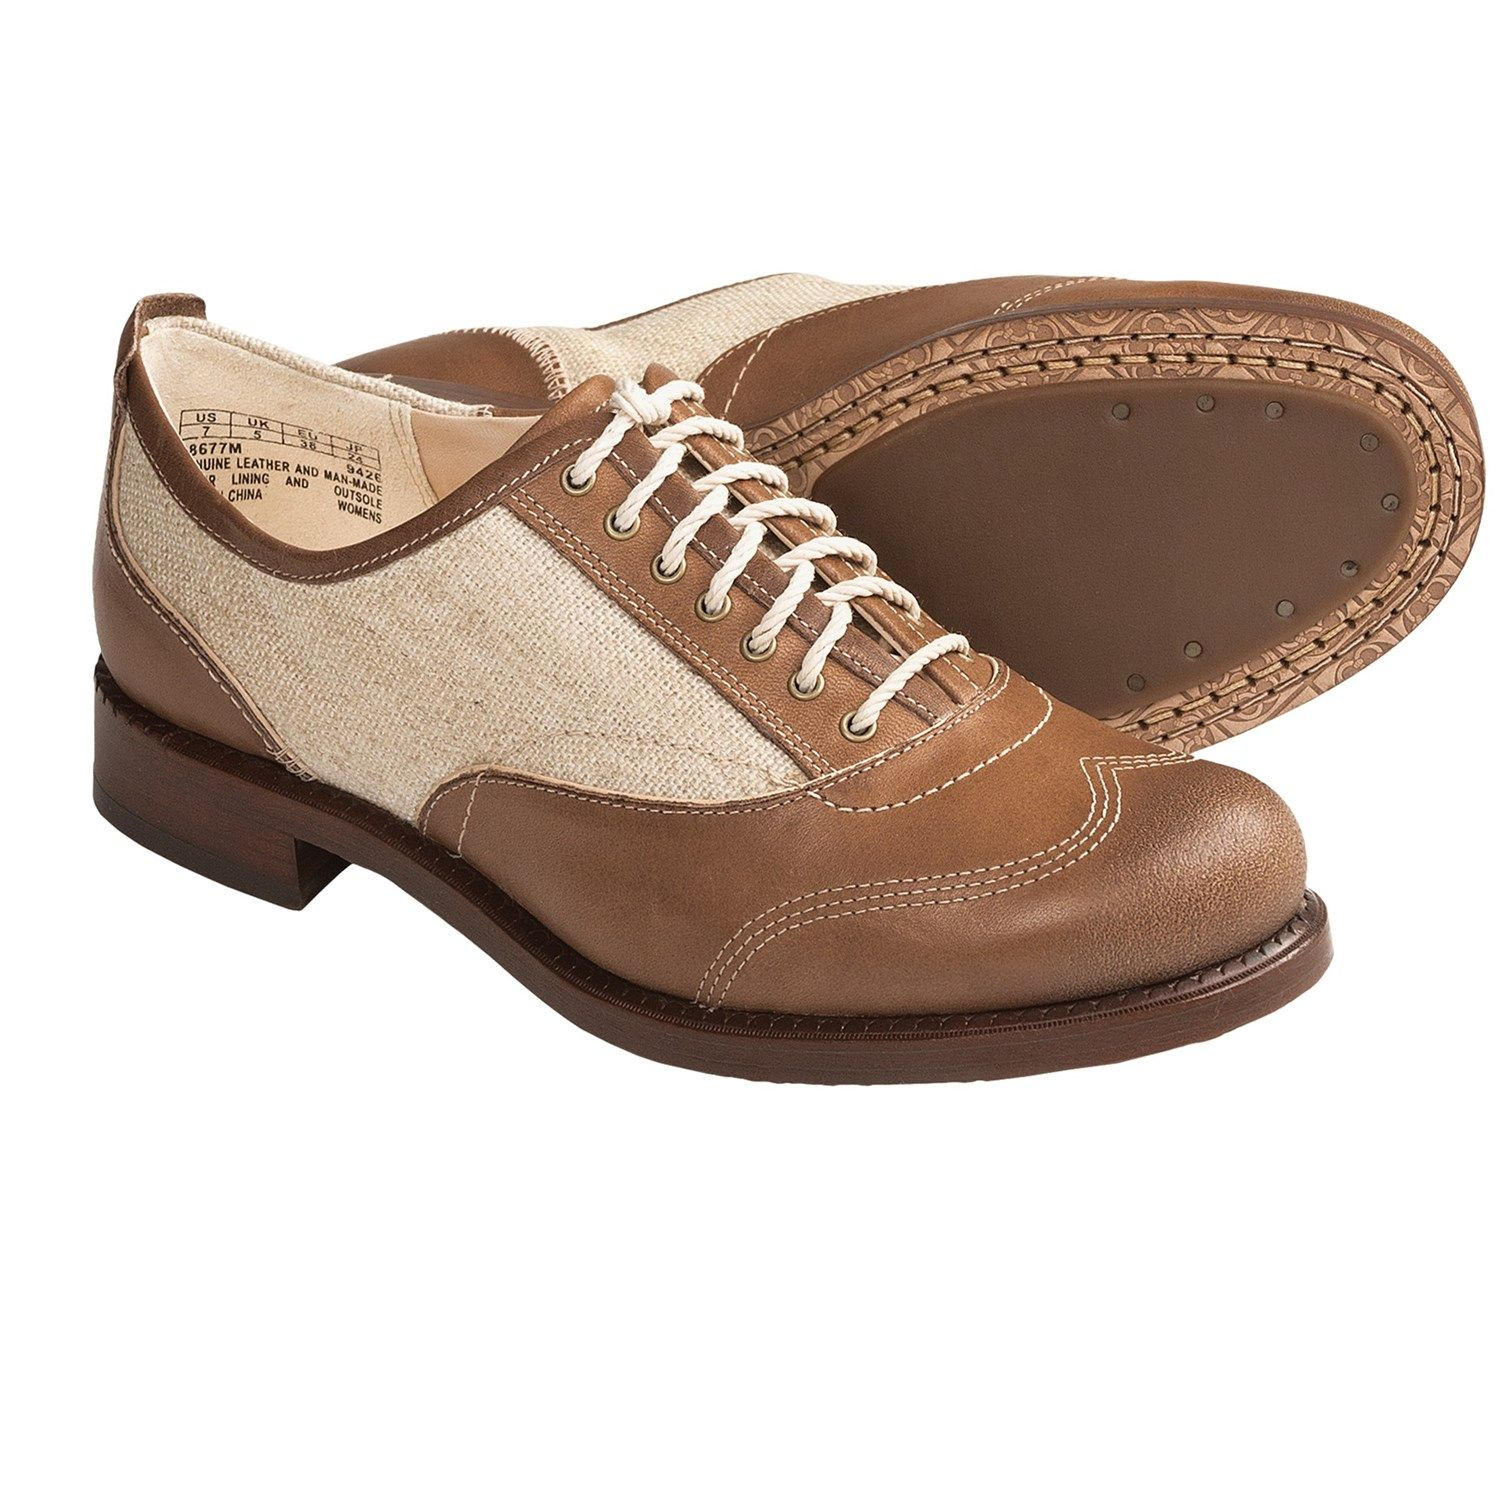 oxford boots for women | Timberland Lucille Oxford Shoes - Leather (For Women) in Tan